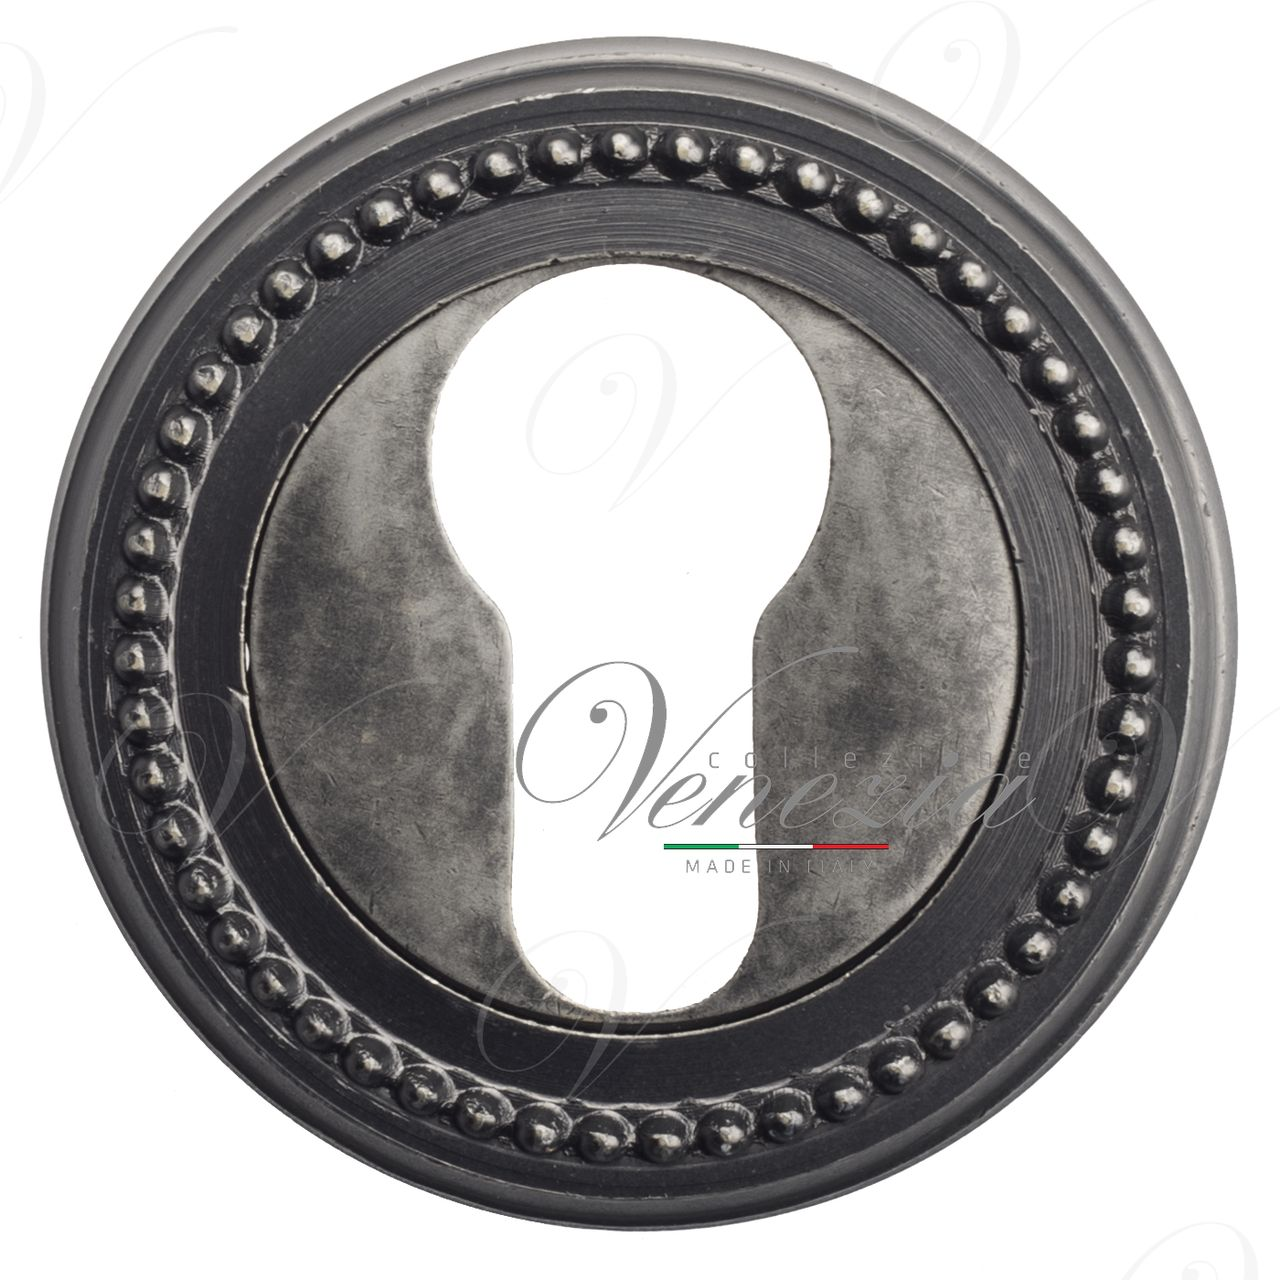 Euro Escutcheon Venezia CYL-1 D3 Antique Silver